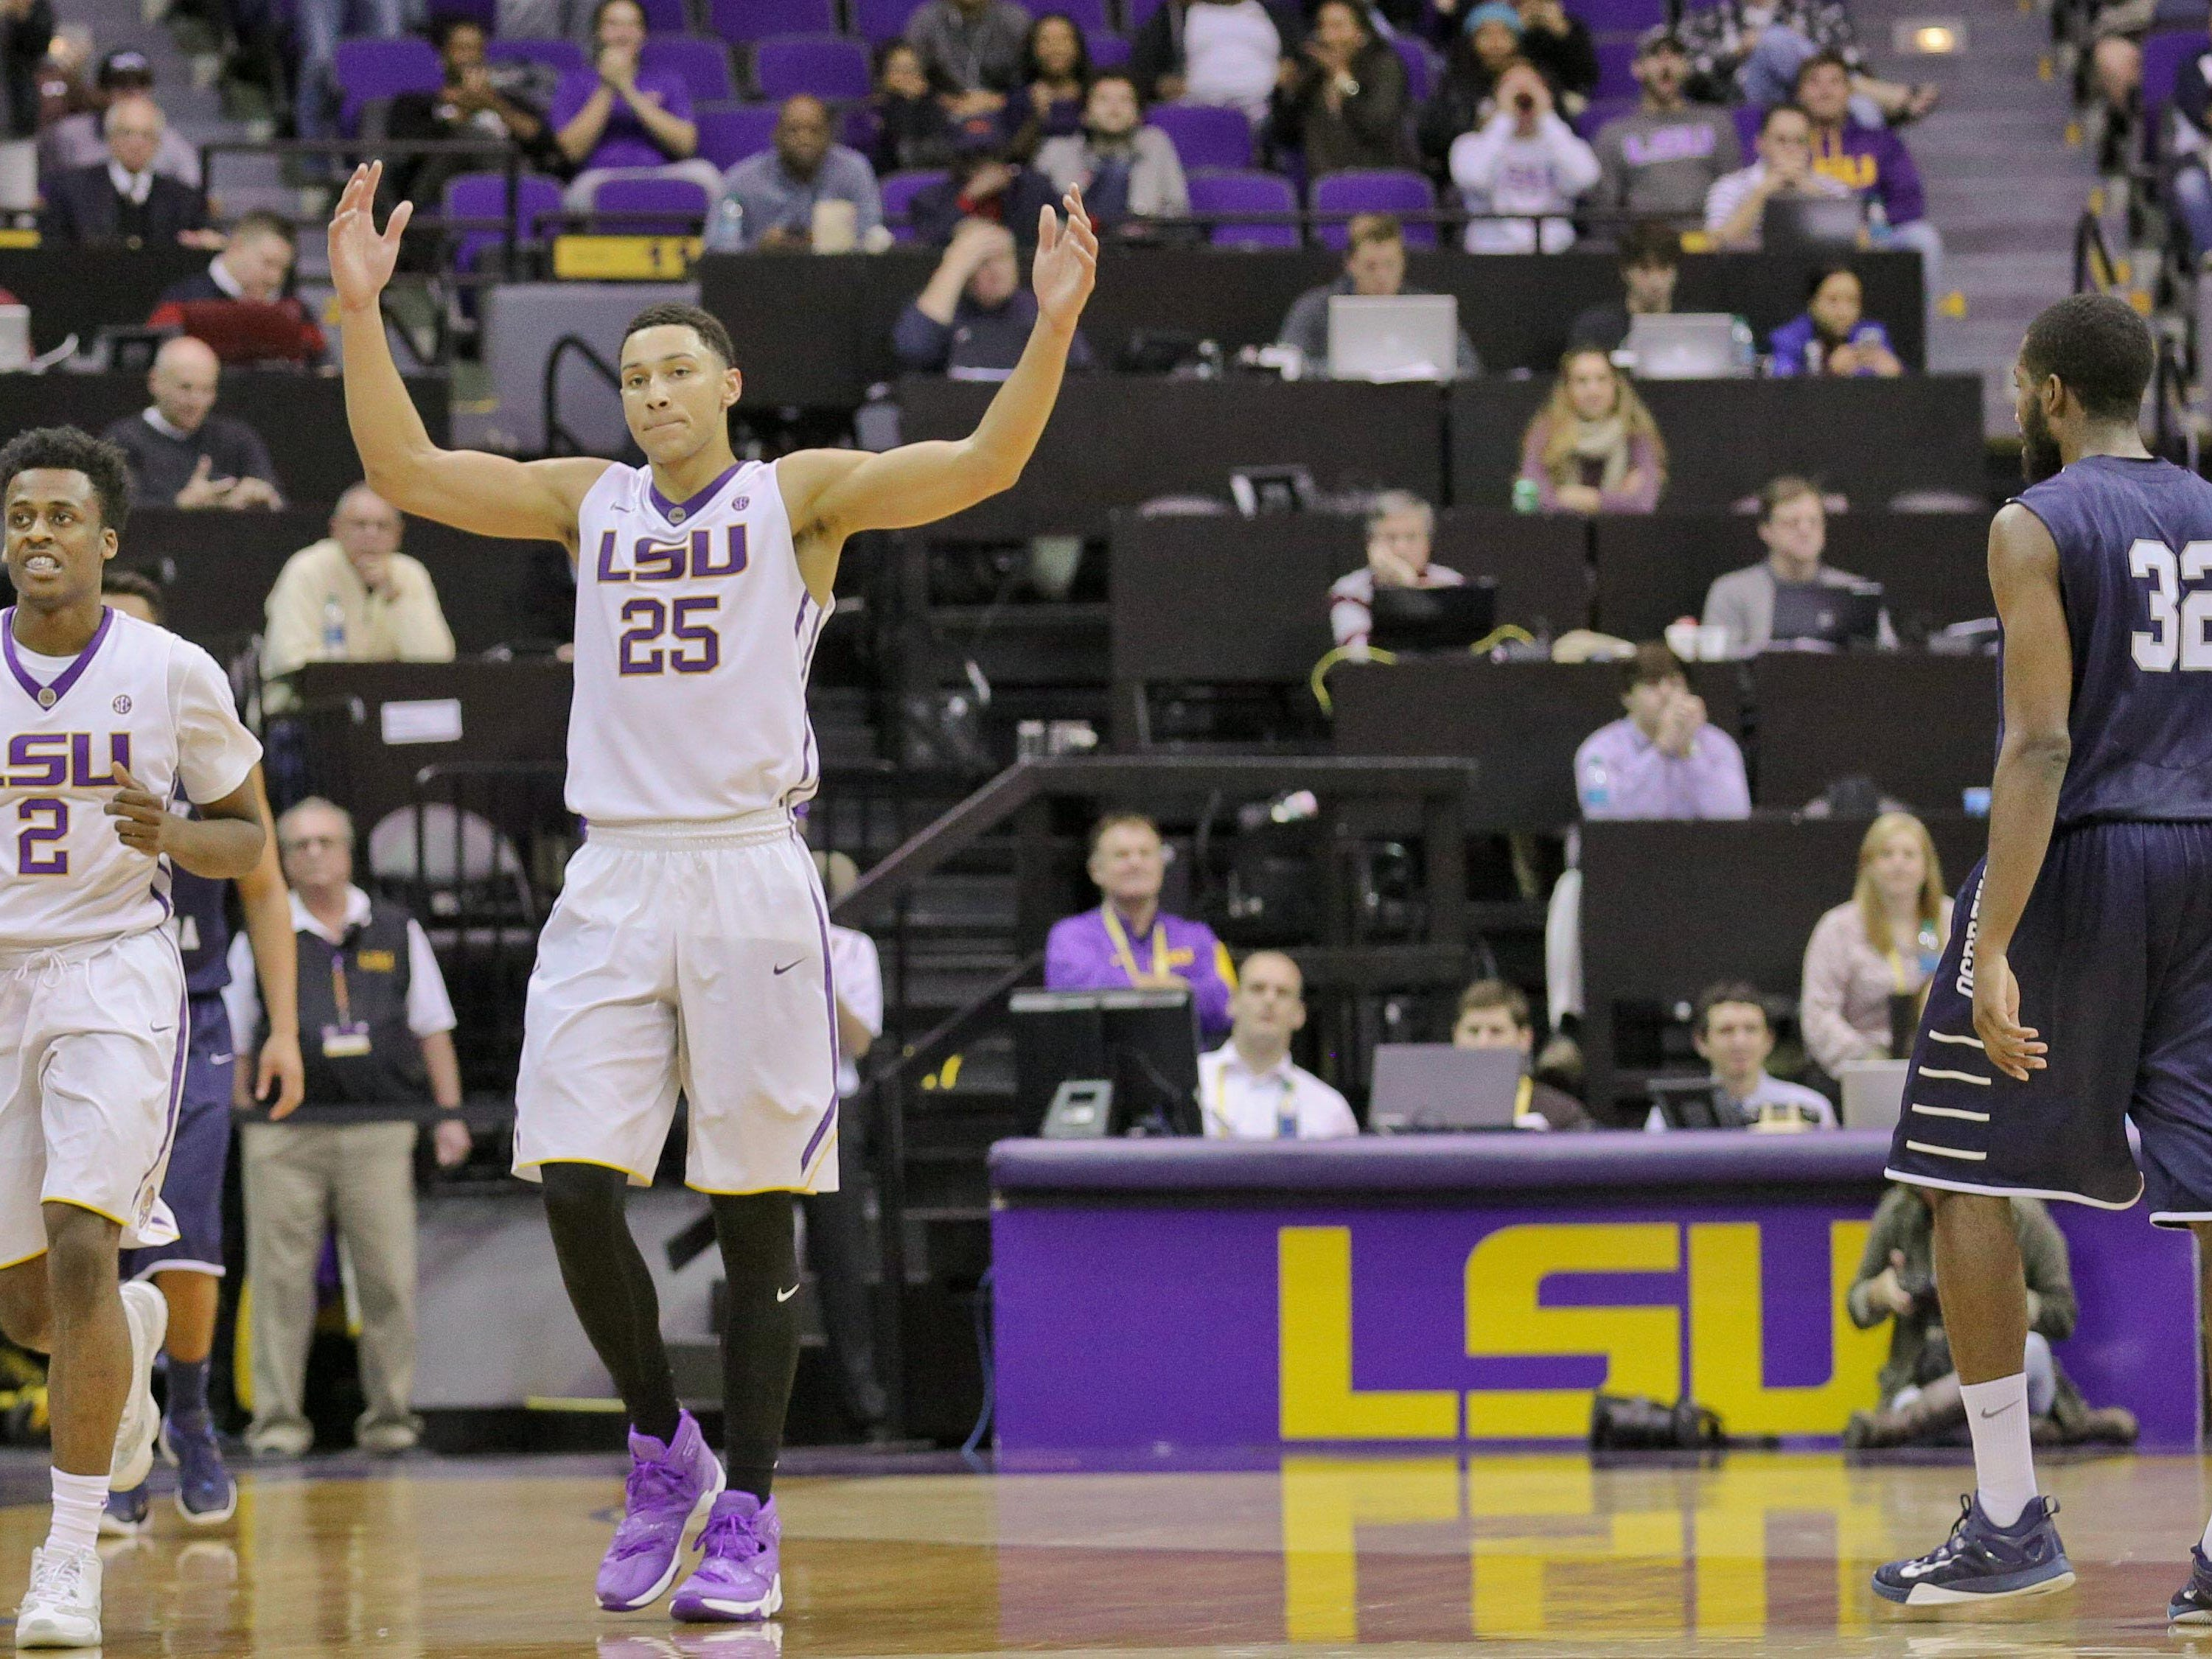 LSU Tigers forward Ben Simmons (25) reacts to the crowd during the second half of a game against the North Florida Ospreys at the Pete Maravich Assembly Center. LSU defeated North Florida 119-108.